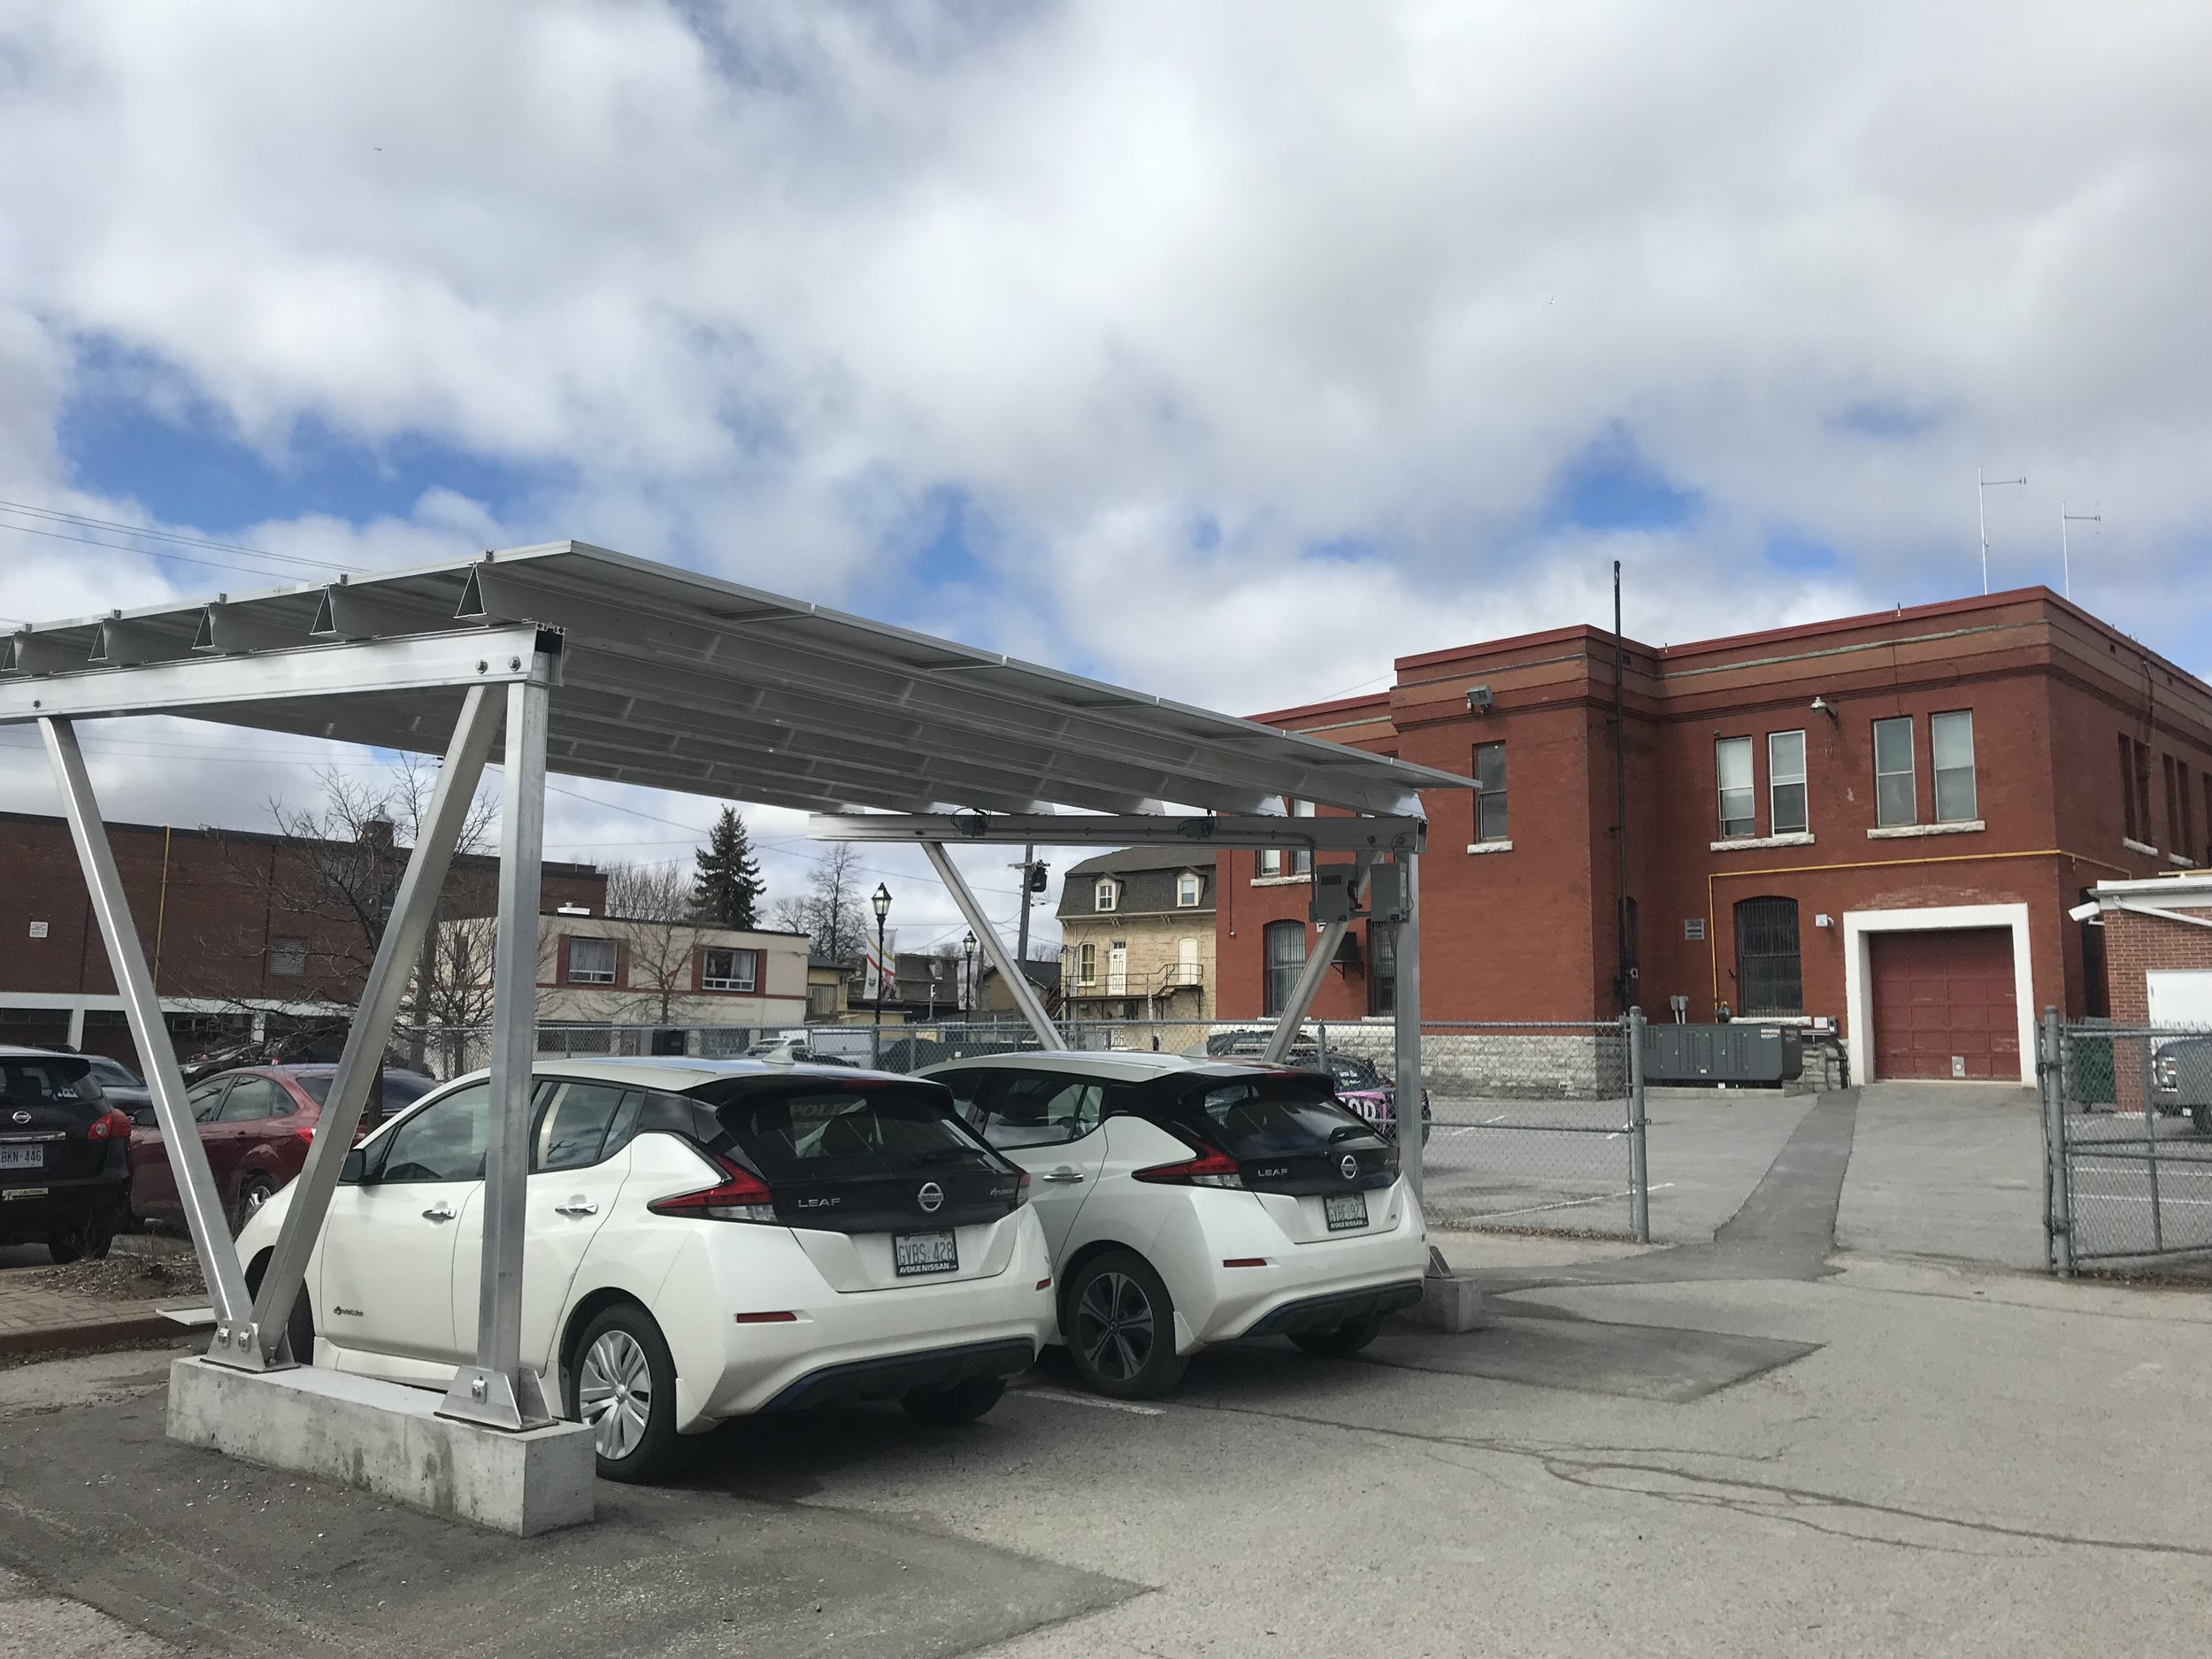 Police Services Solar Carport, Level 2 and Level 3 Bidirectional EV Charger Installation, Cobourg